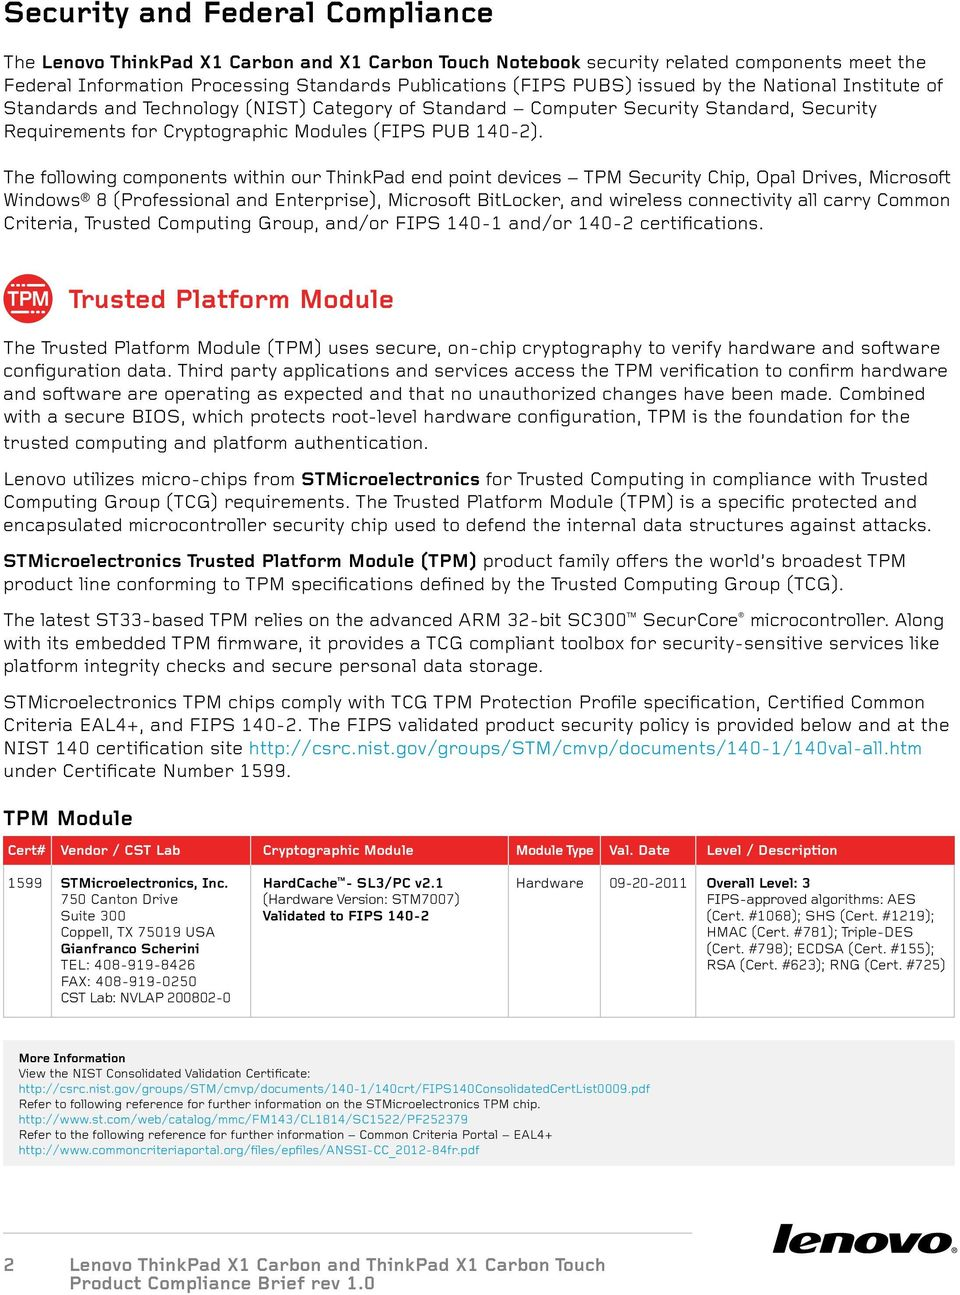 ThinkPad X1 Carbon And X1 Carbon Touch  Product Compliance